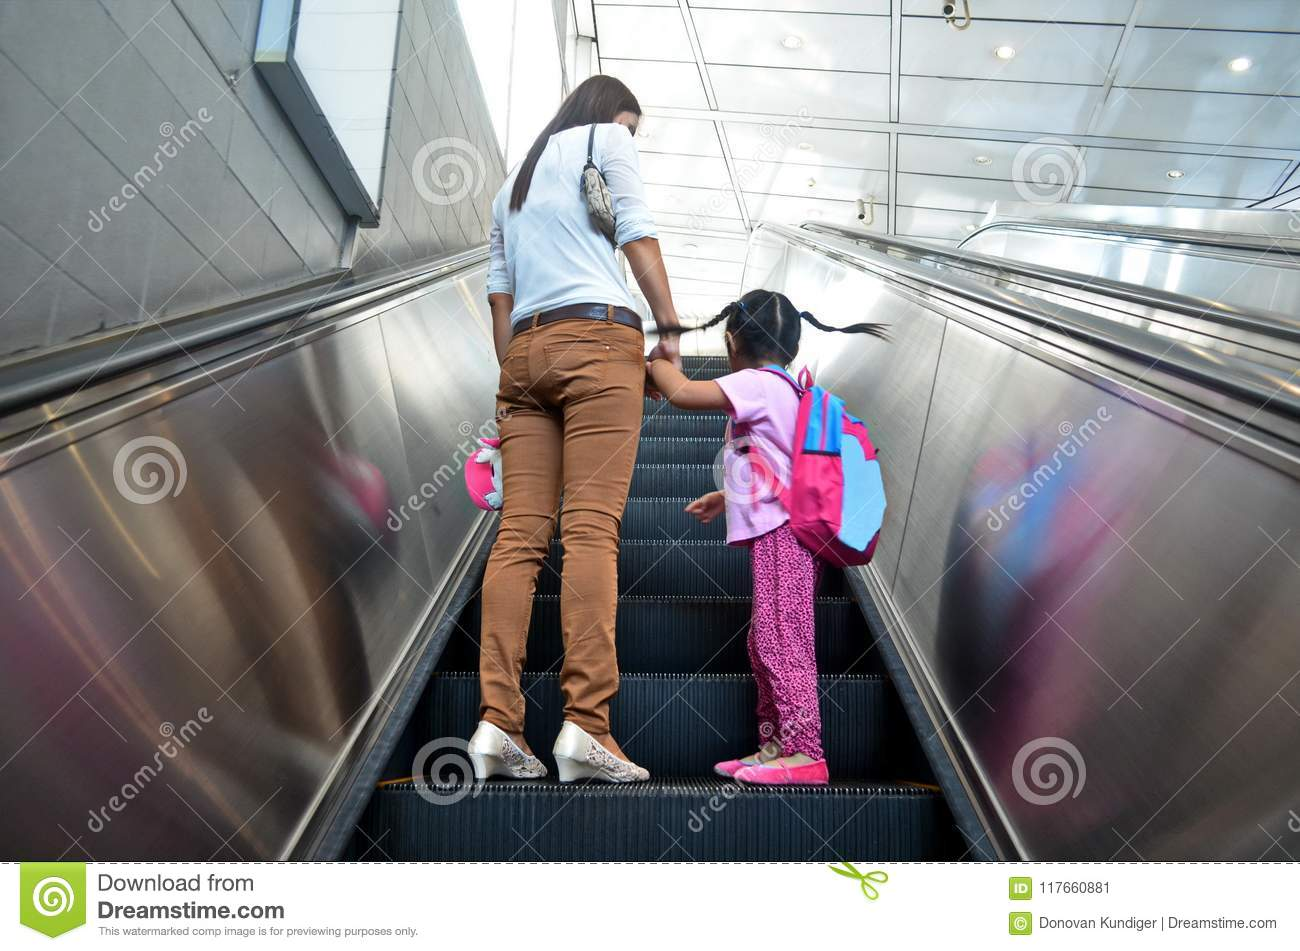 Mother helps alleviate fears on her daughter`s first ride on an escalator.